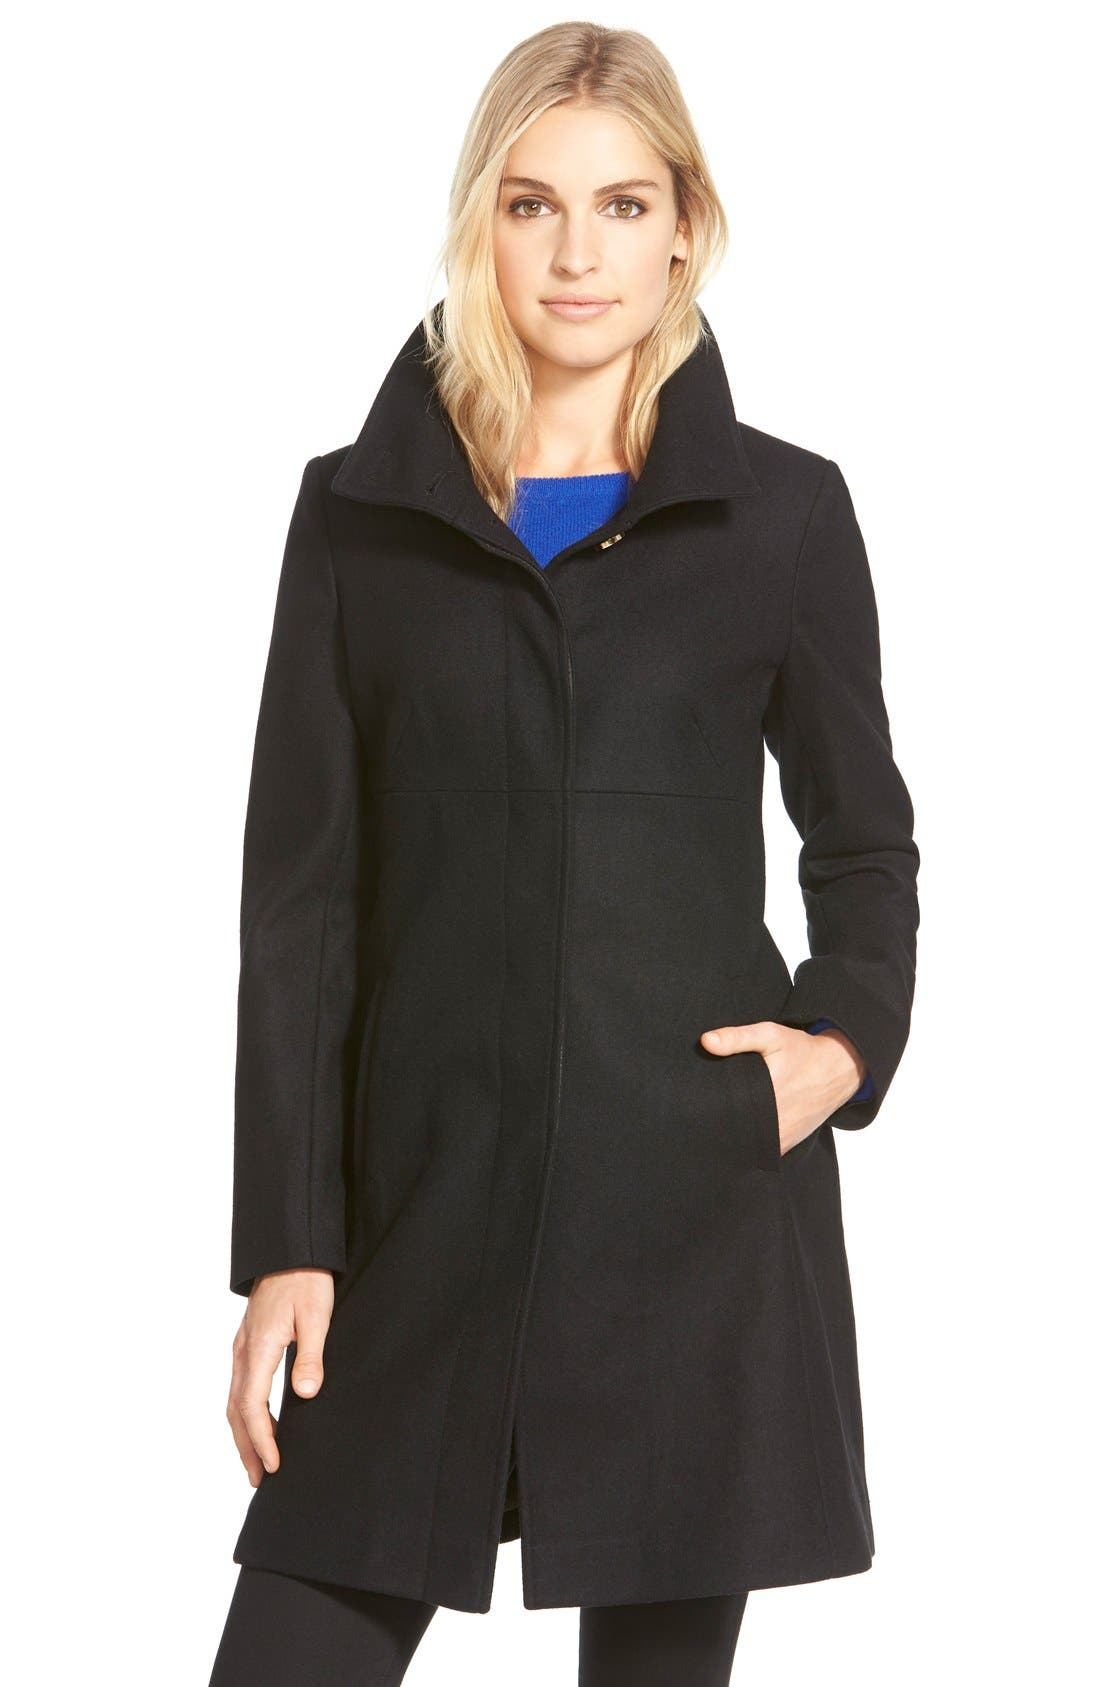 VIA SPIGA Stand Collar Wool Blend A-Line Coat, Main, color, 001